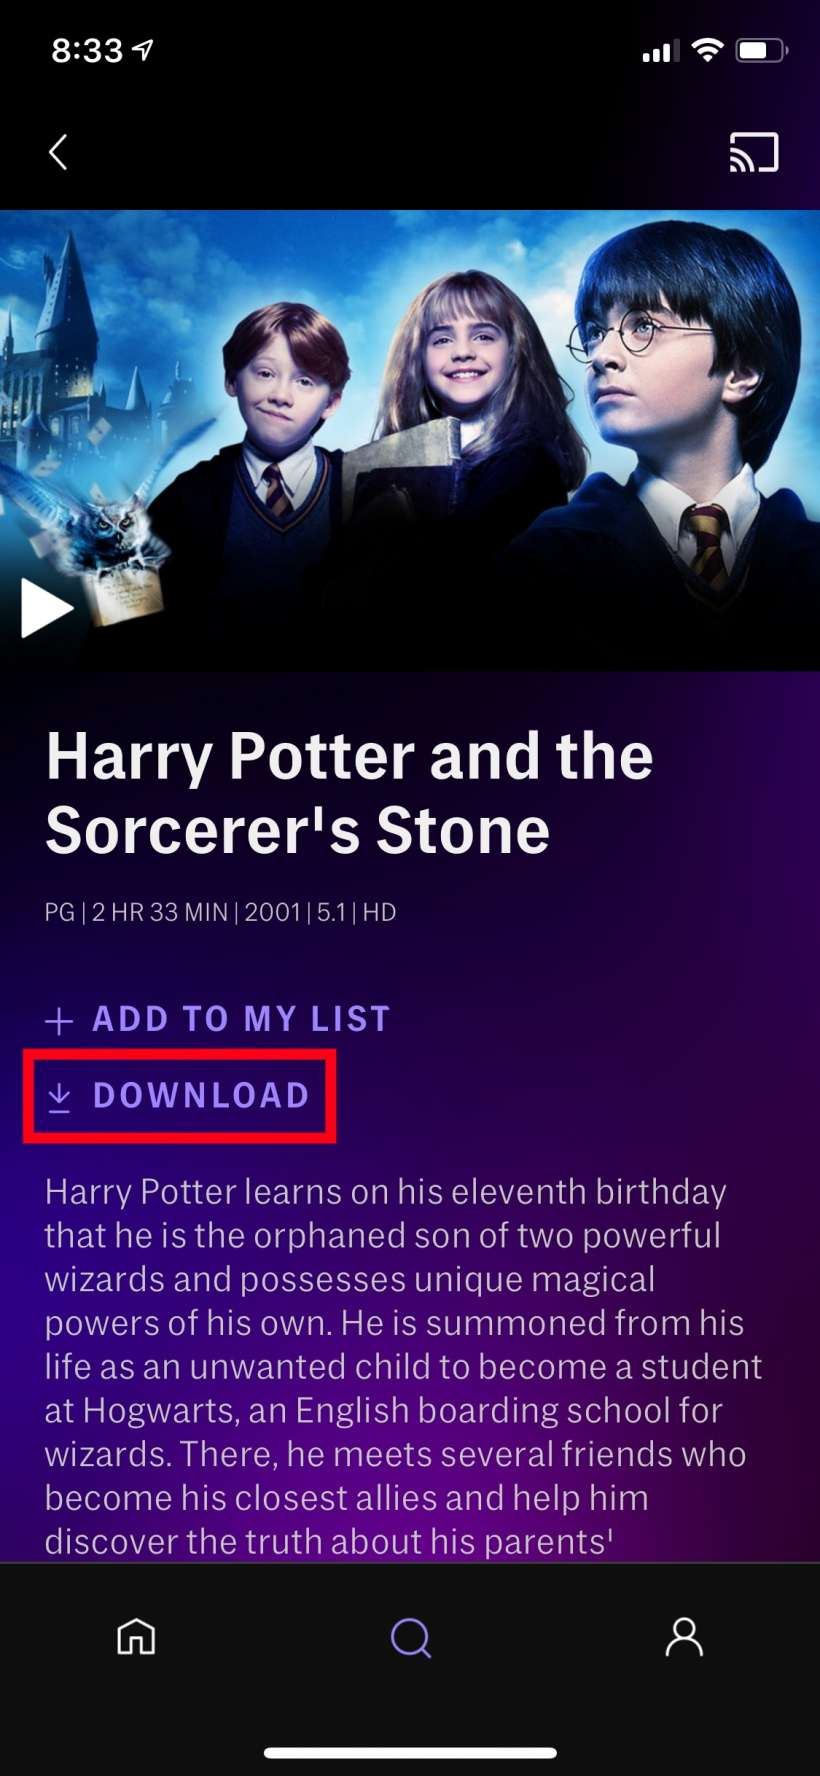 How to download HBO Max movies and shows to watch offline on iPhone and iPad.